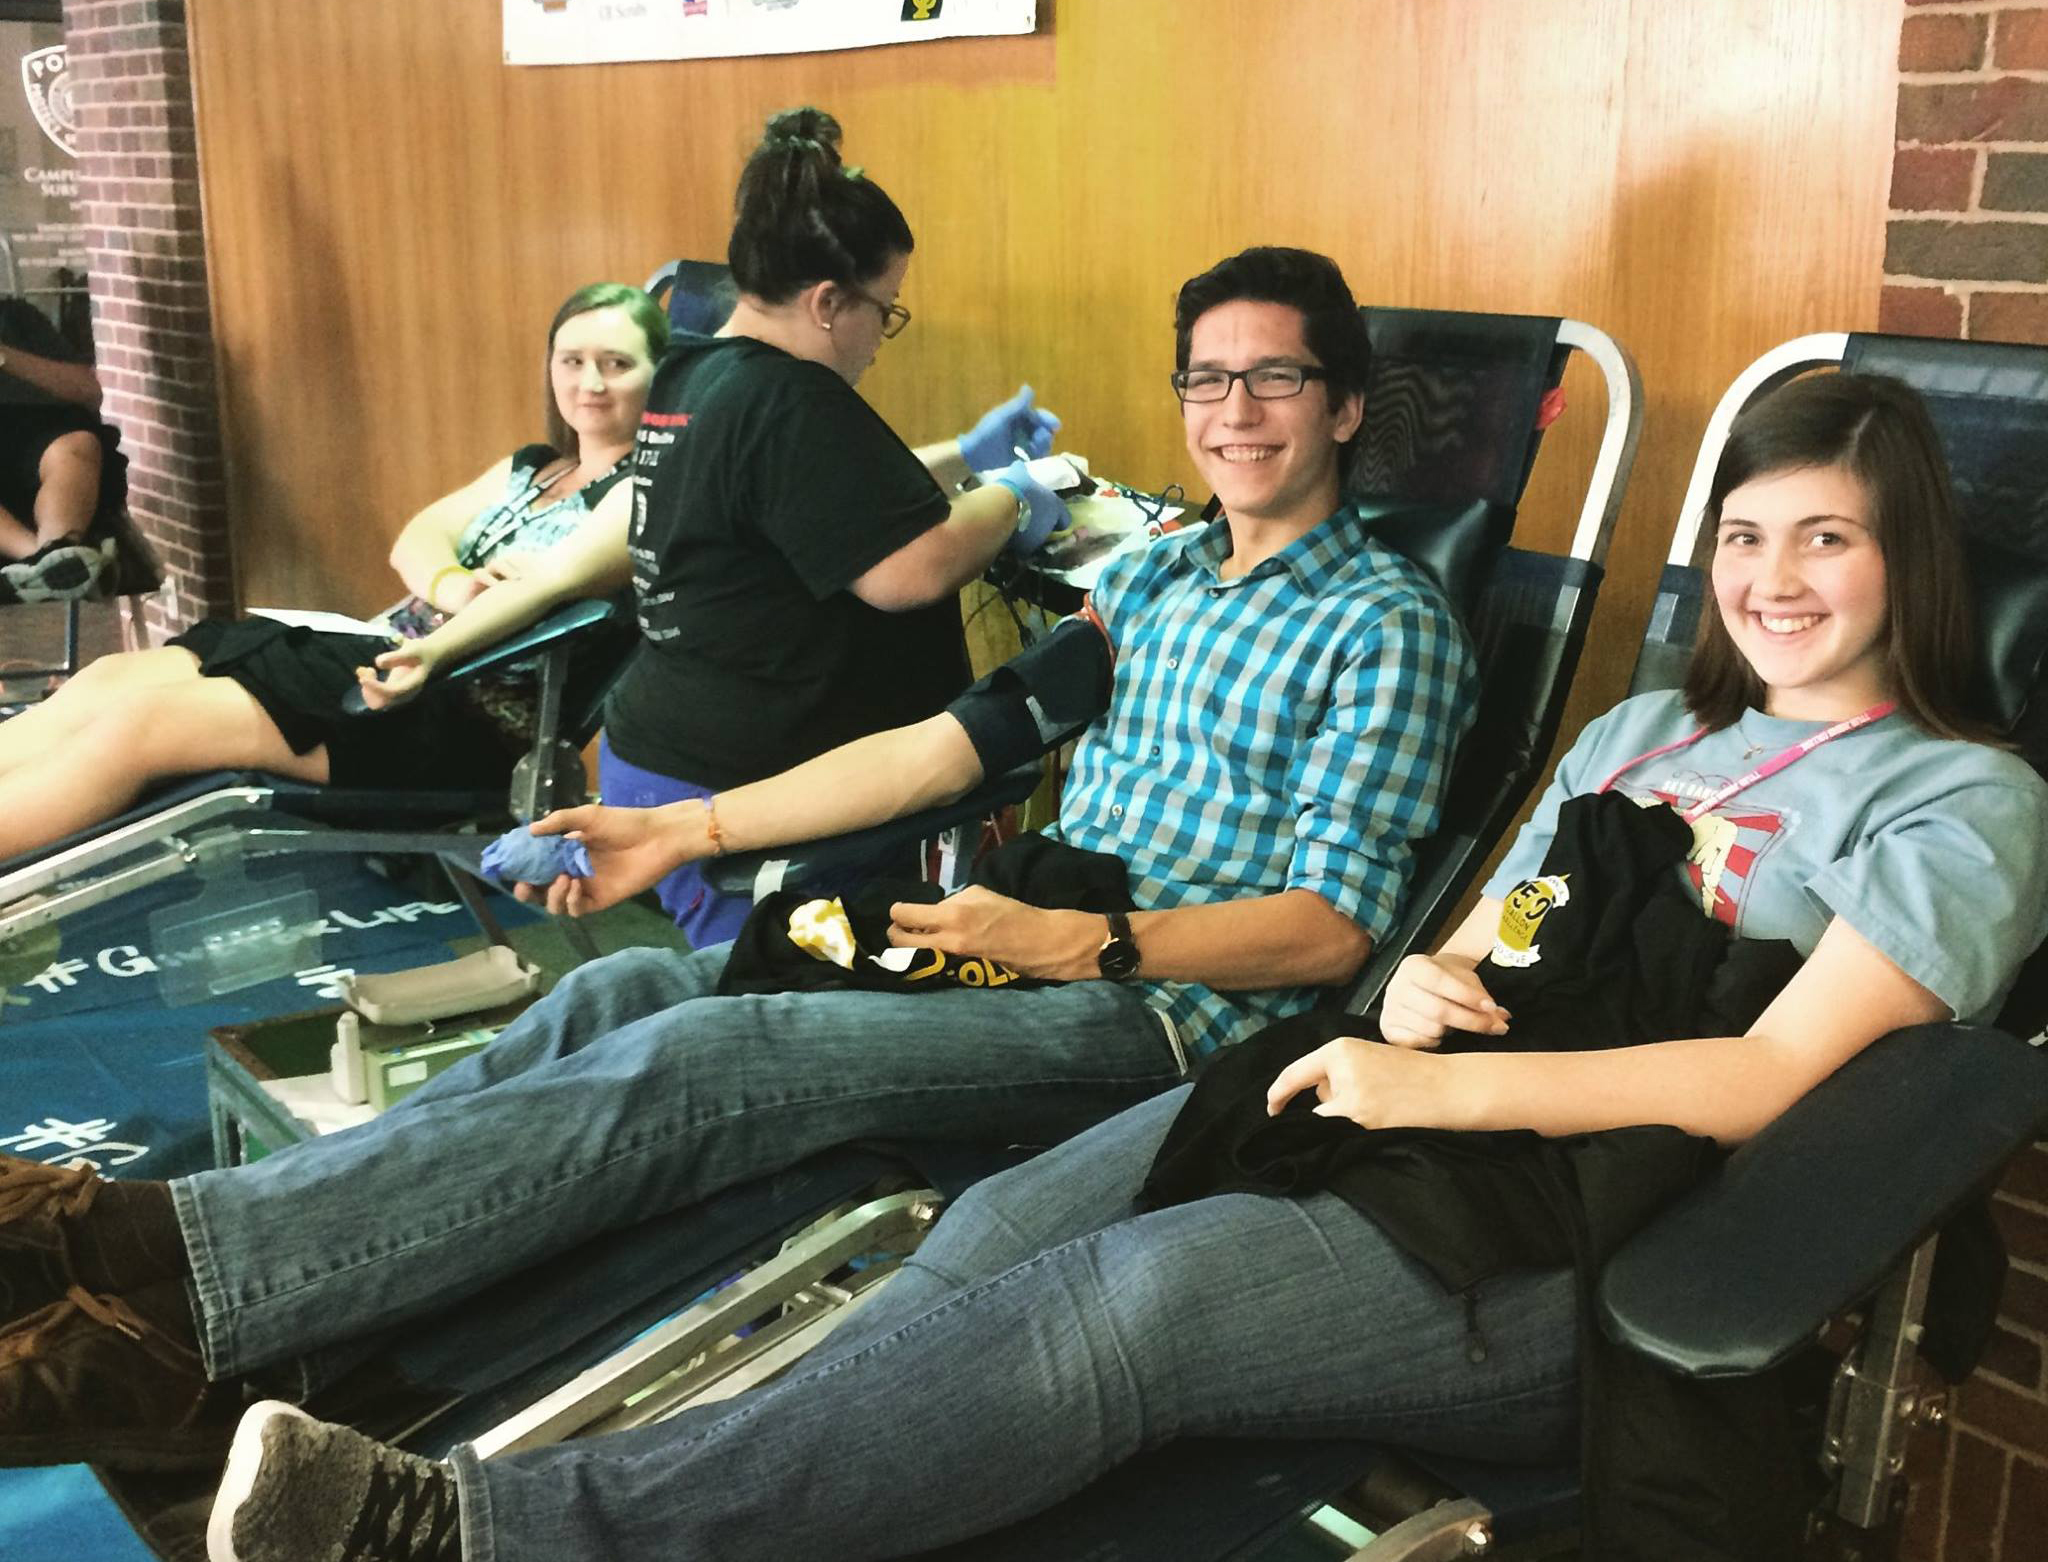 50 Gallon Challenge Blood Drive at TJC